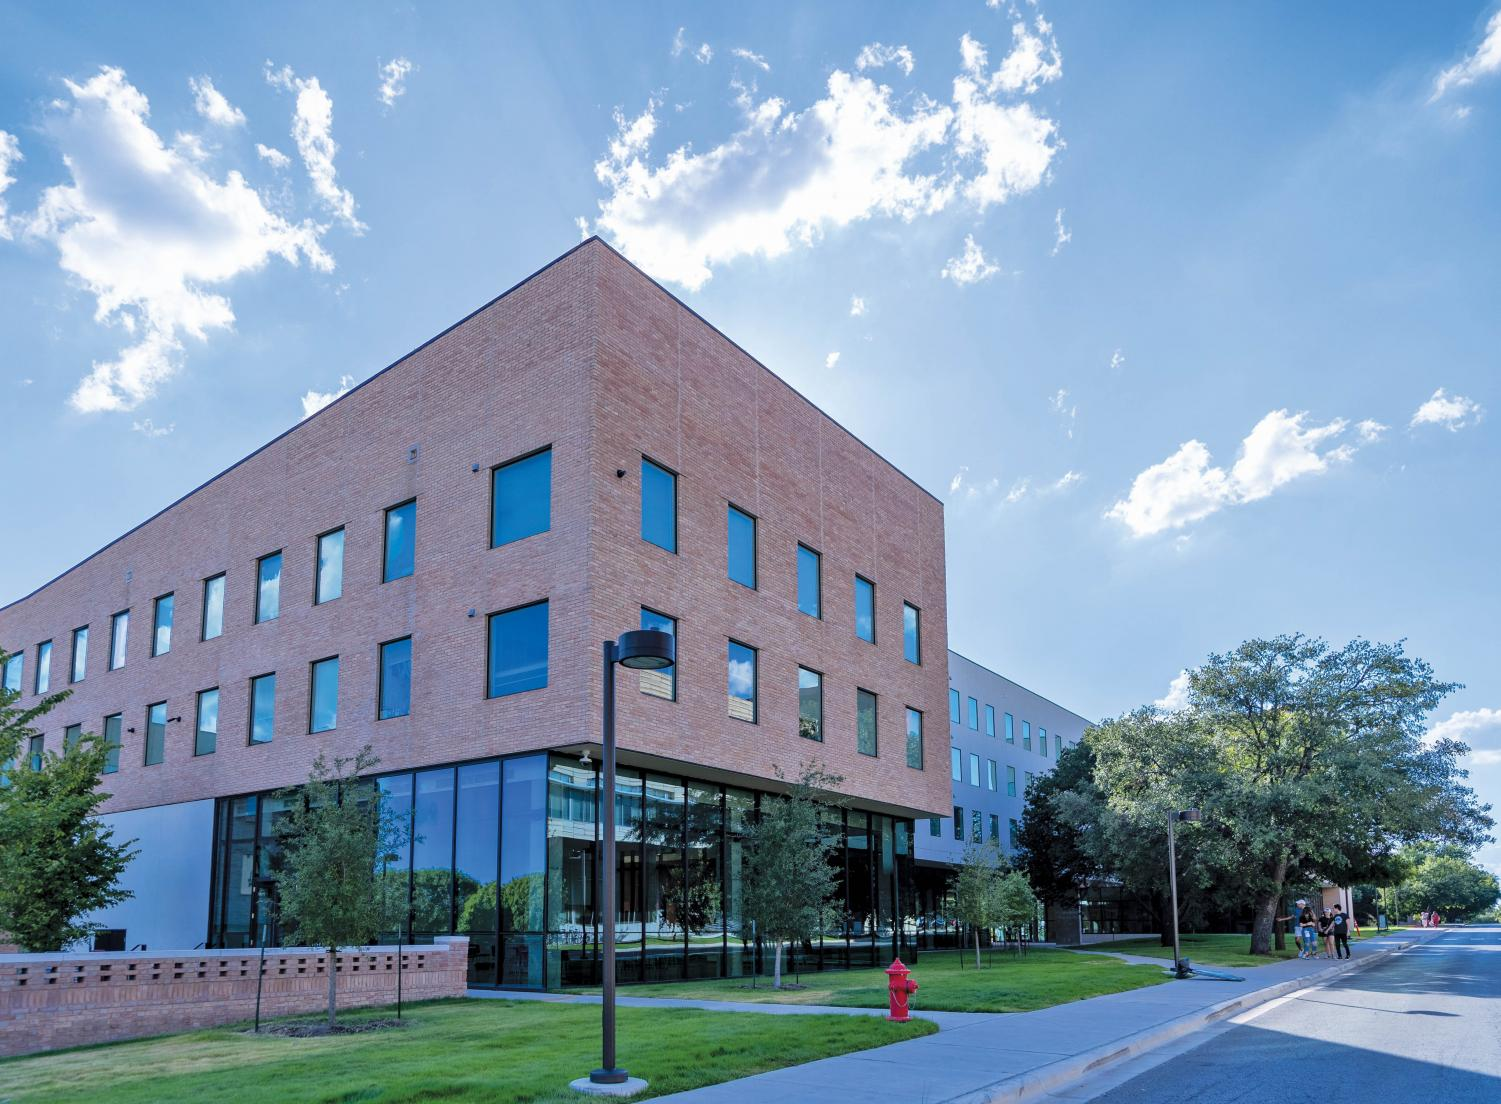 The Pavilions was closed for a year before re-opening for the Fall 2019 semester. Students living in the new apartments are satisfied with their rooms so far.